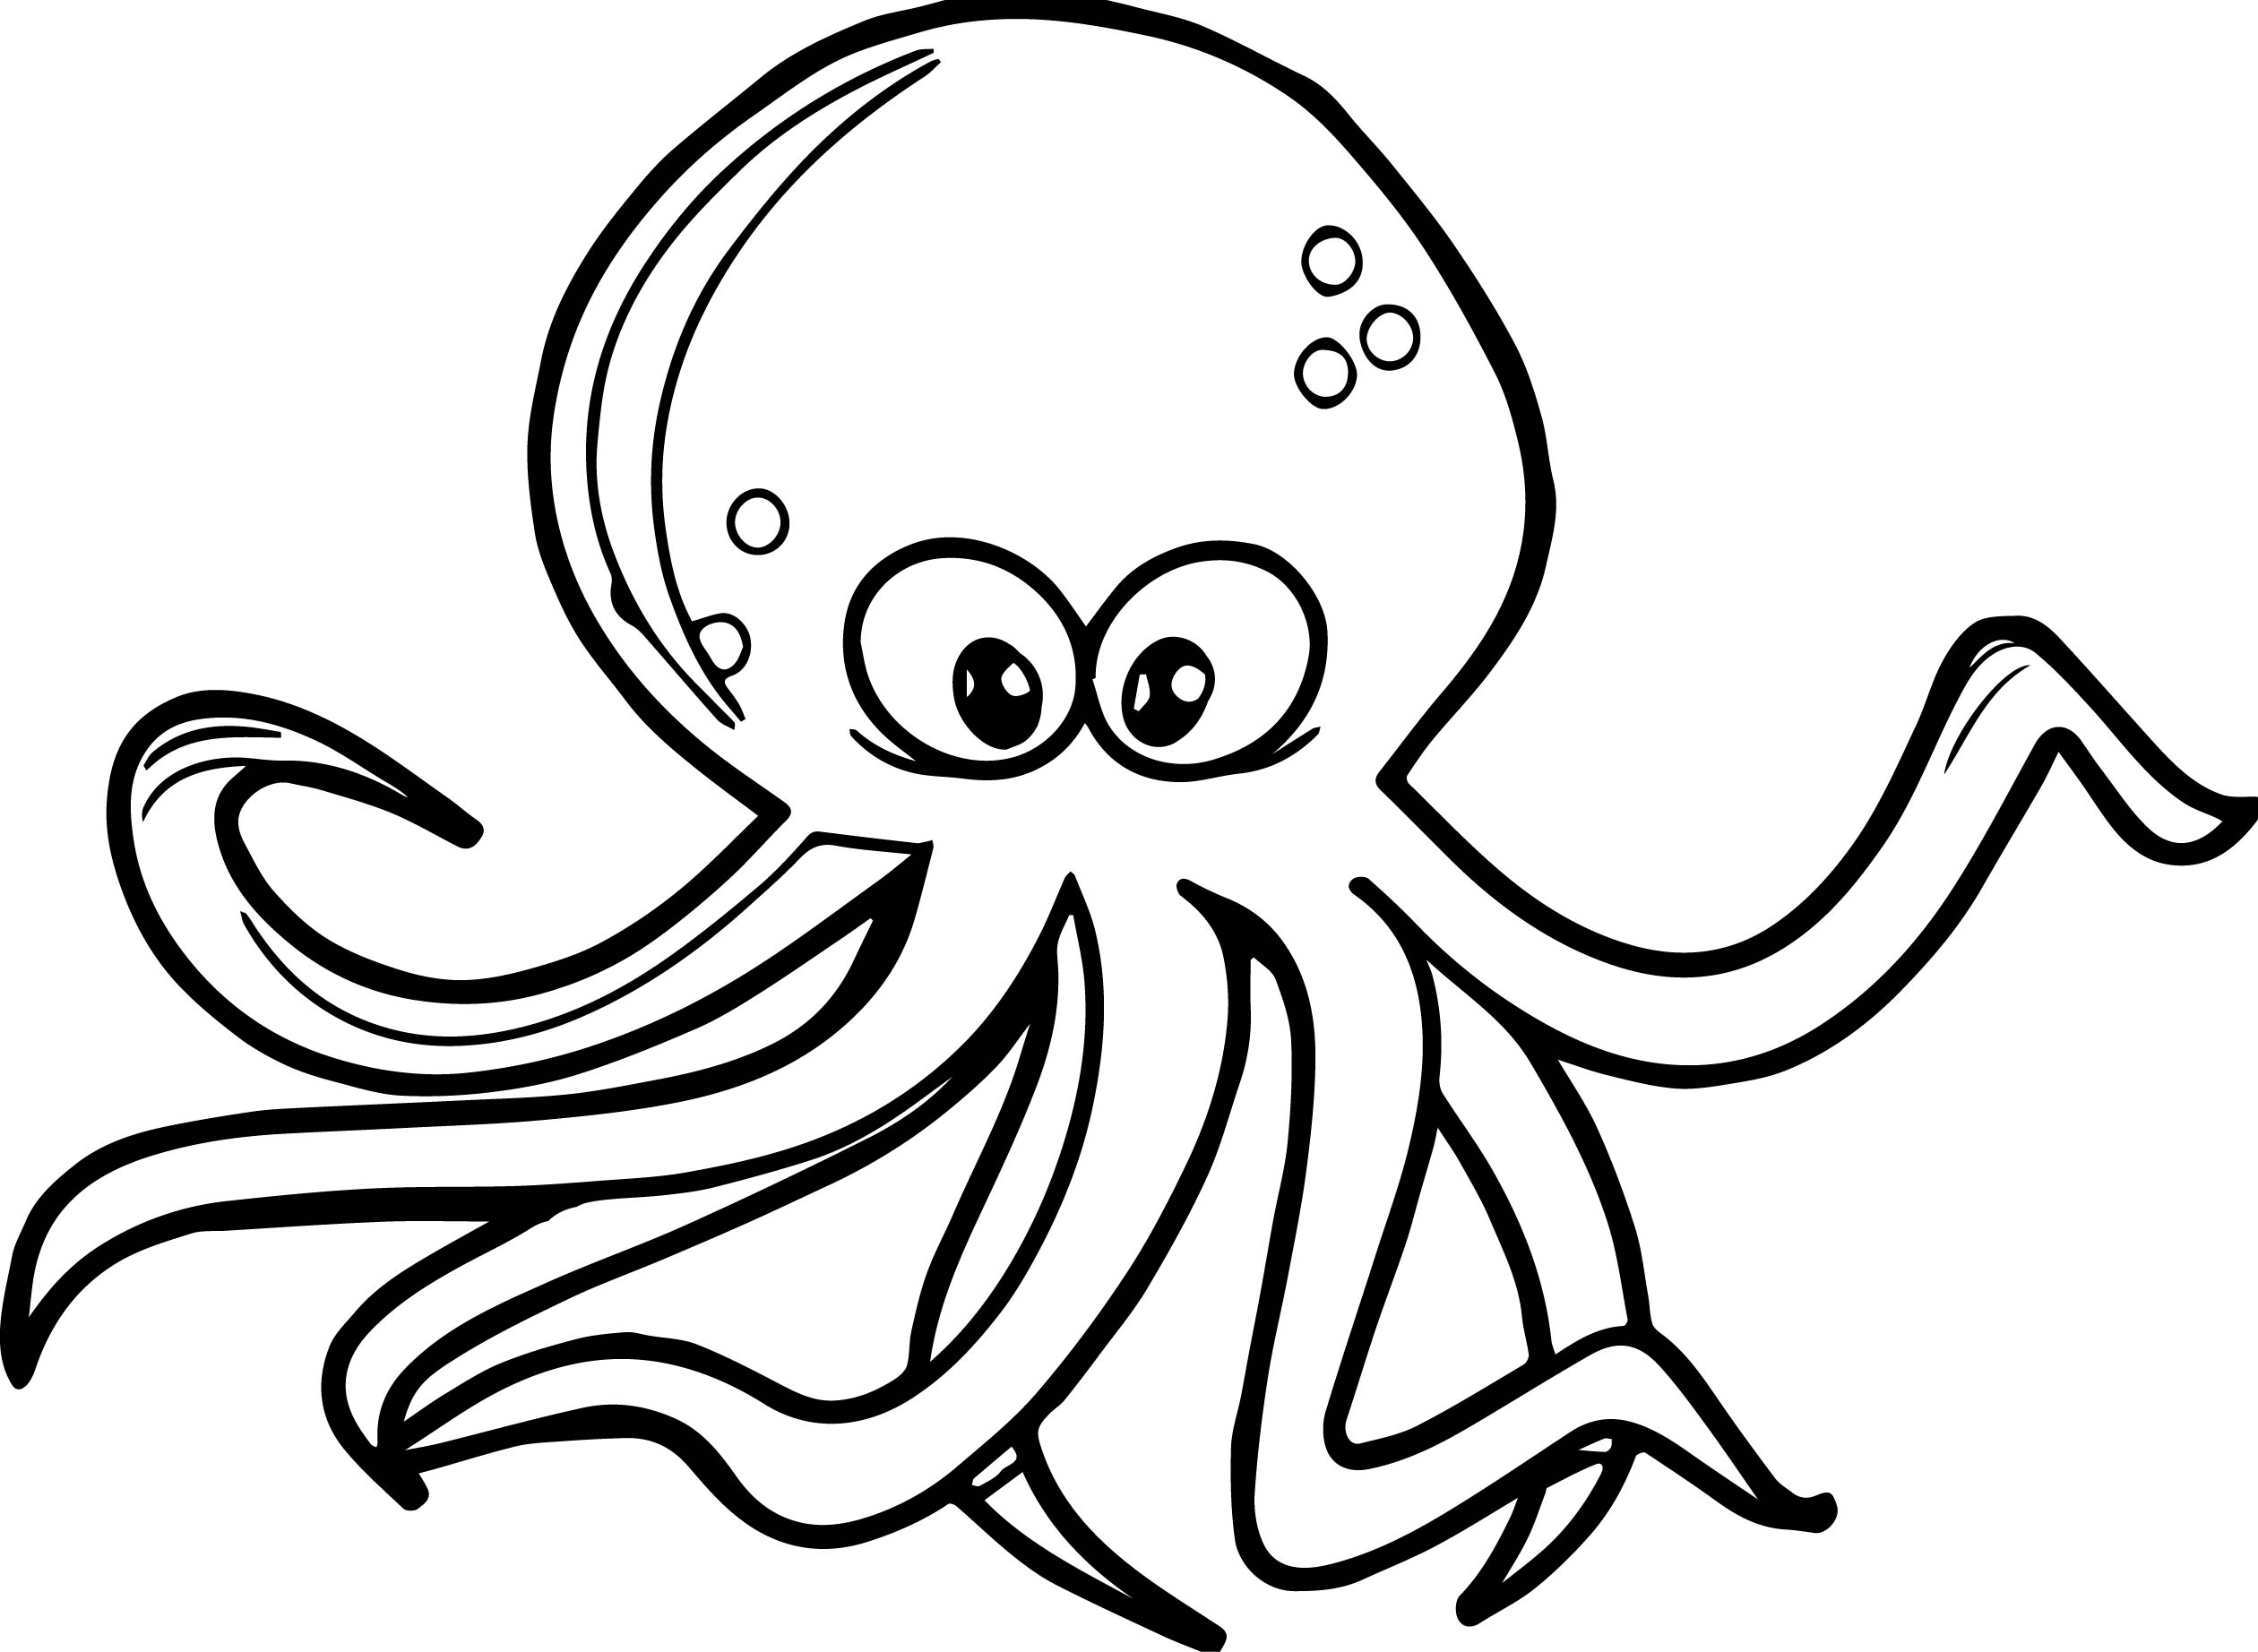 free octopus coloring pages free printable octopus coloring pages for kids coloring octopus pages free